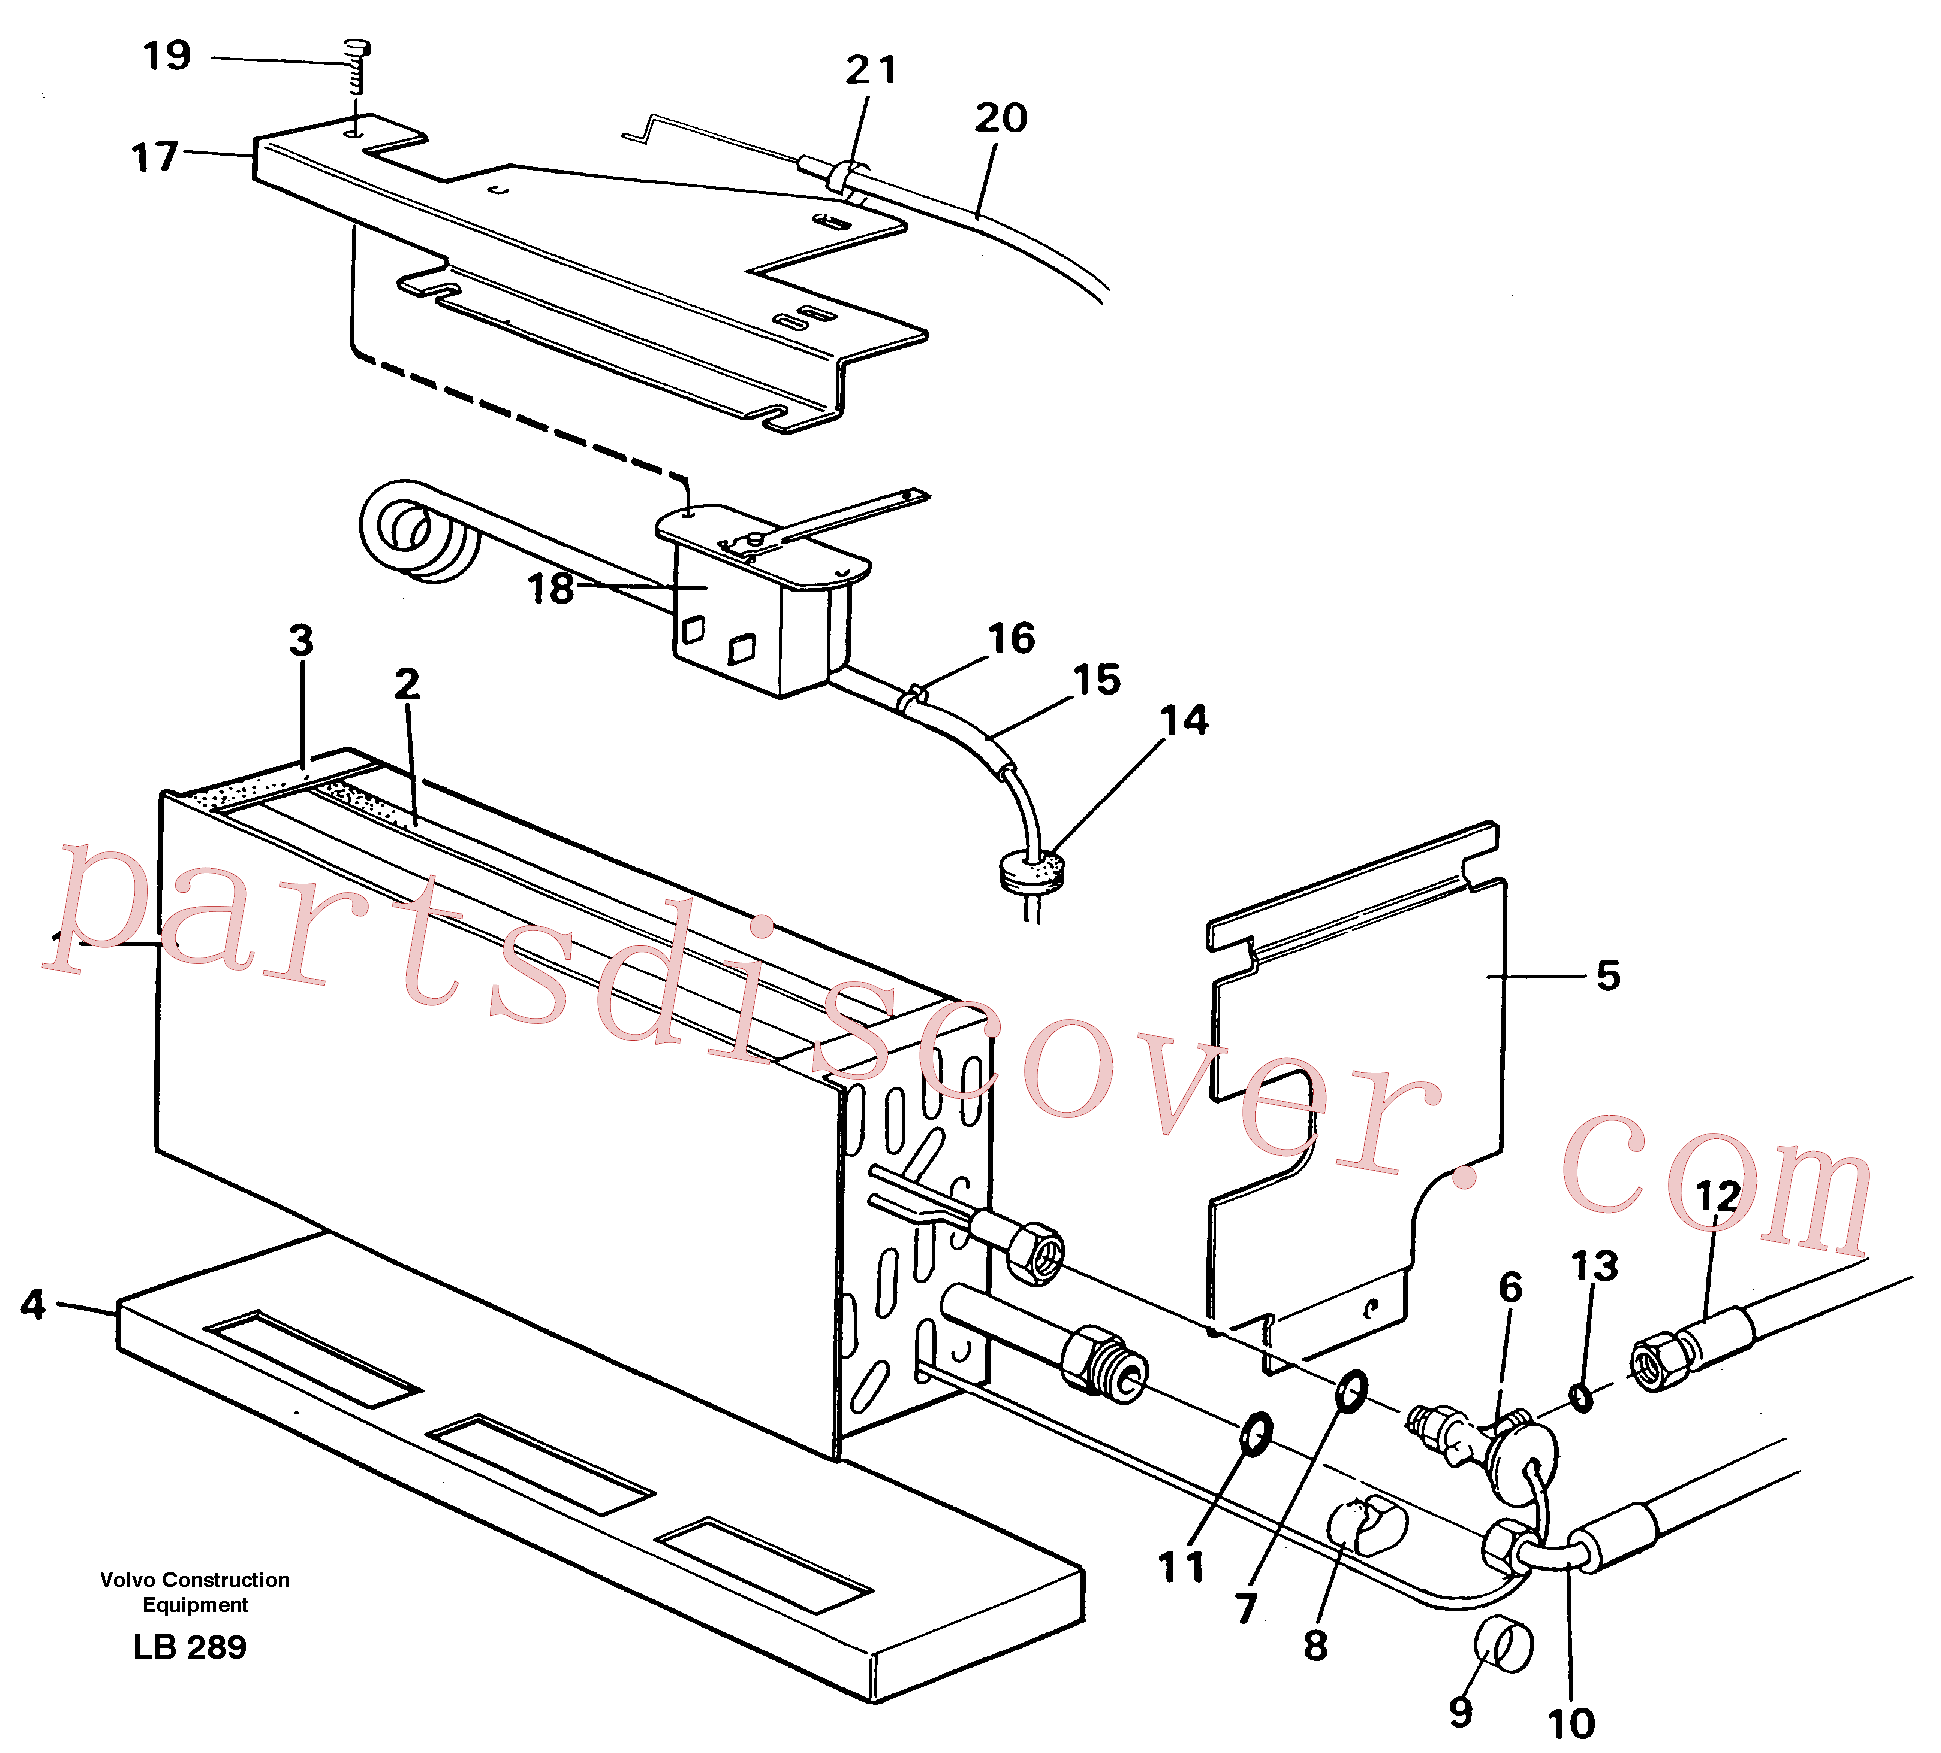 ZM3537507 for Volvo Evaporator with fitting parts, cooling agent R134a(LB289 assembly)